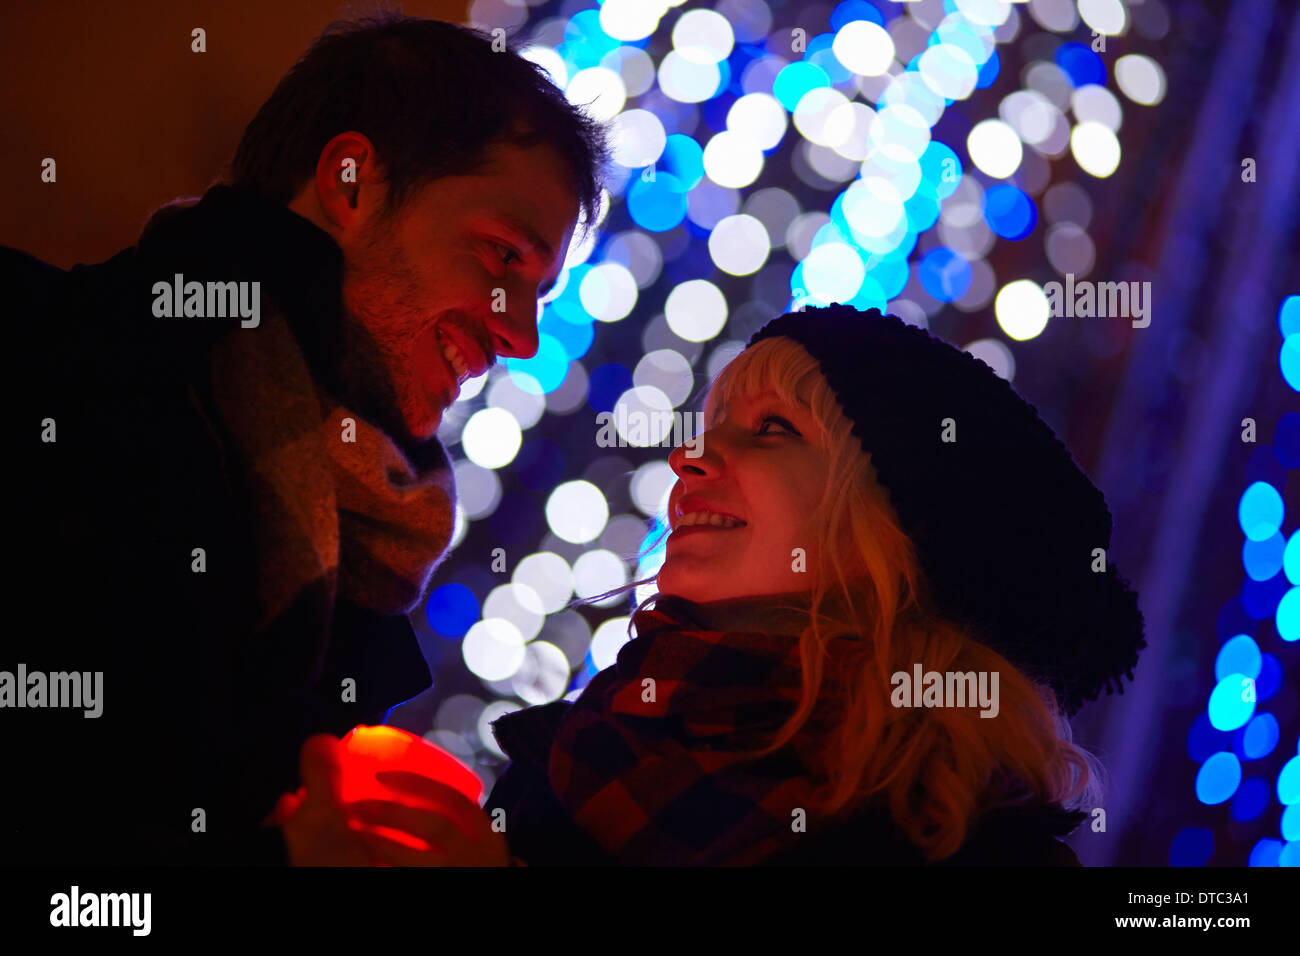 Young couple holding candle in front of city xmas lights - Stock Image